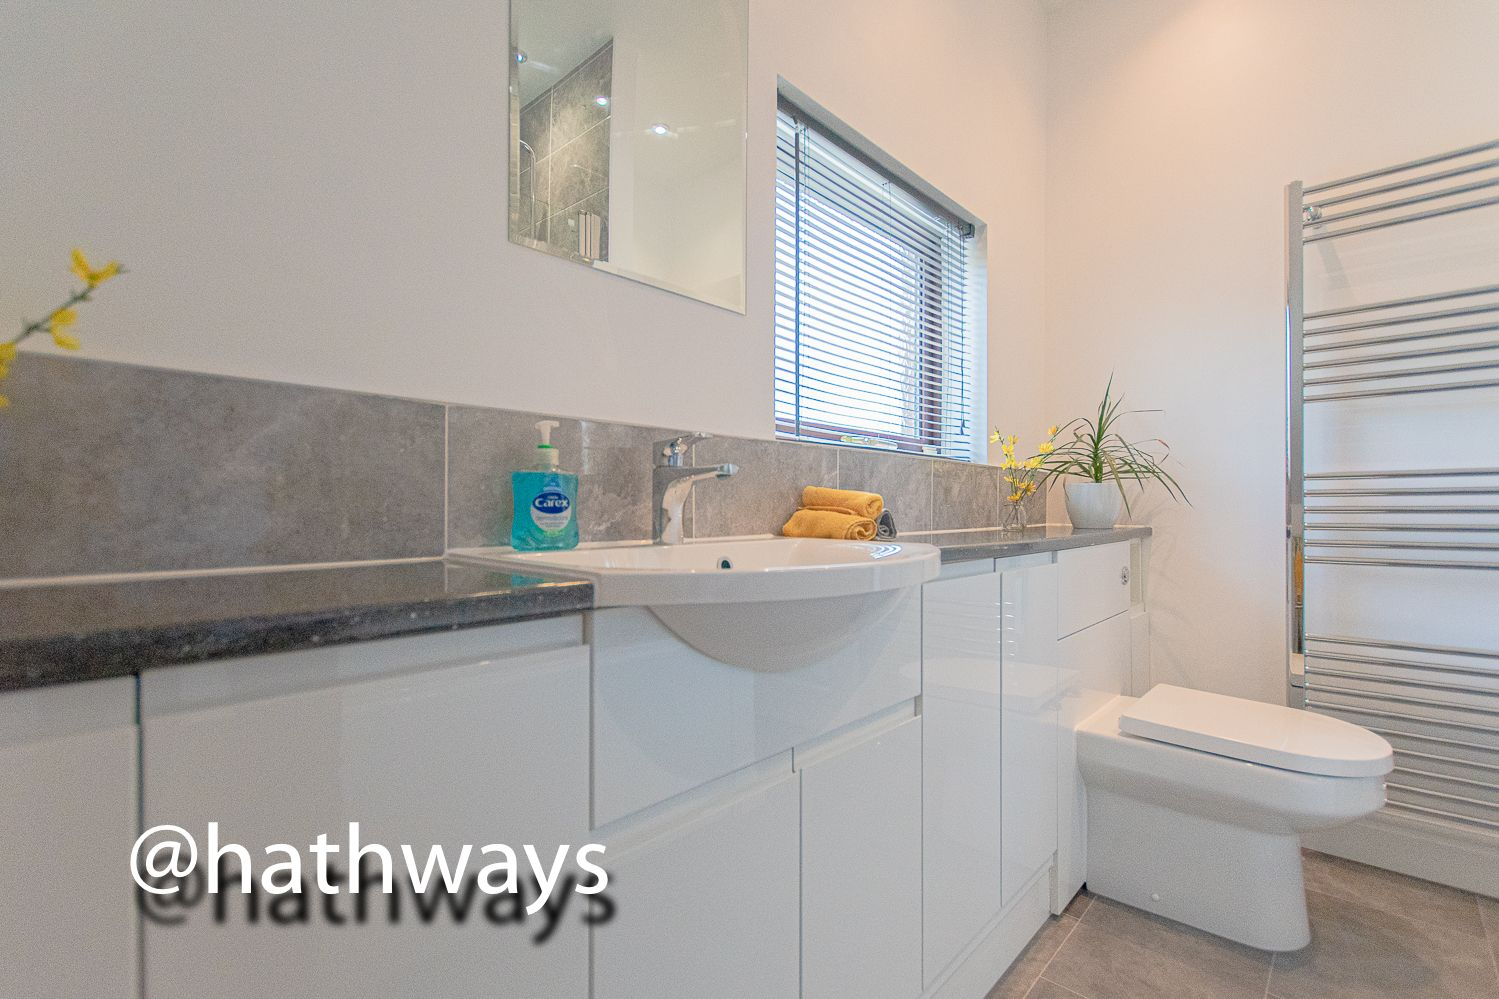 4 bed house for sale in Ashford Close South 48